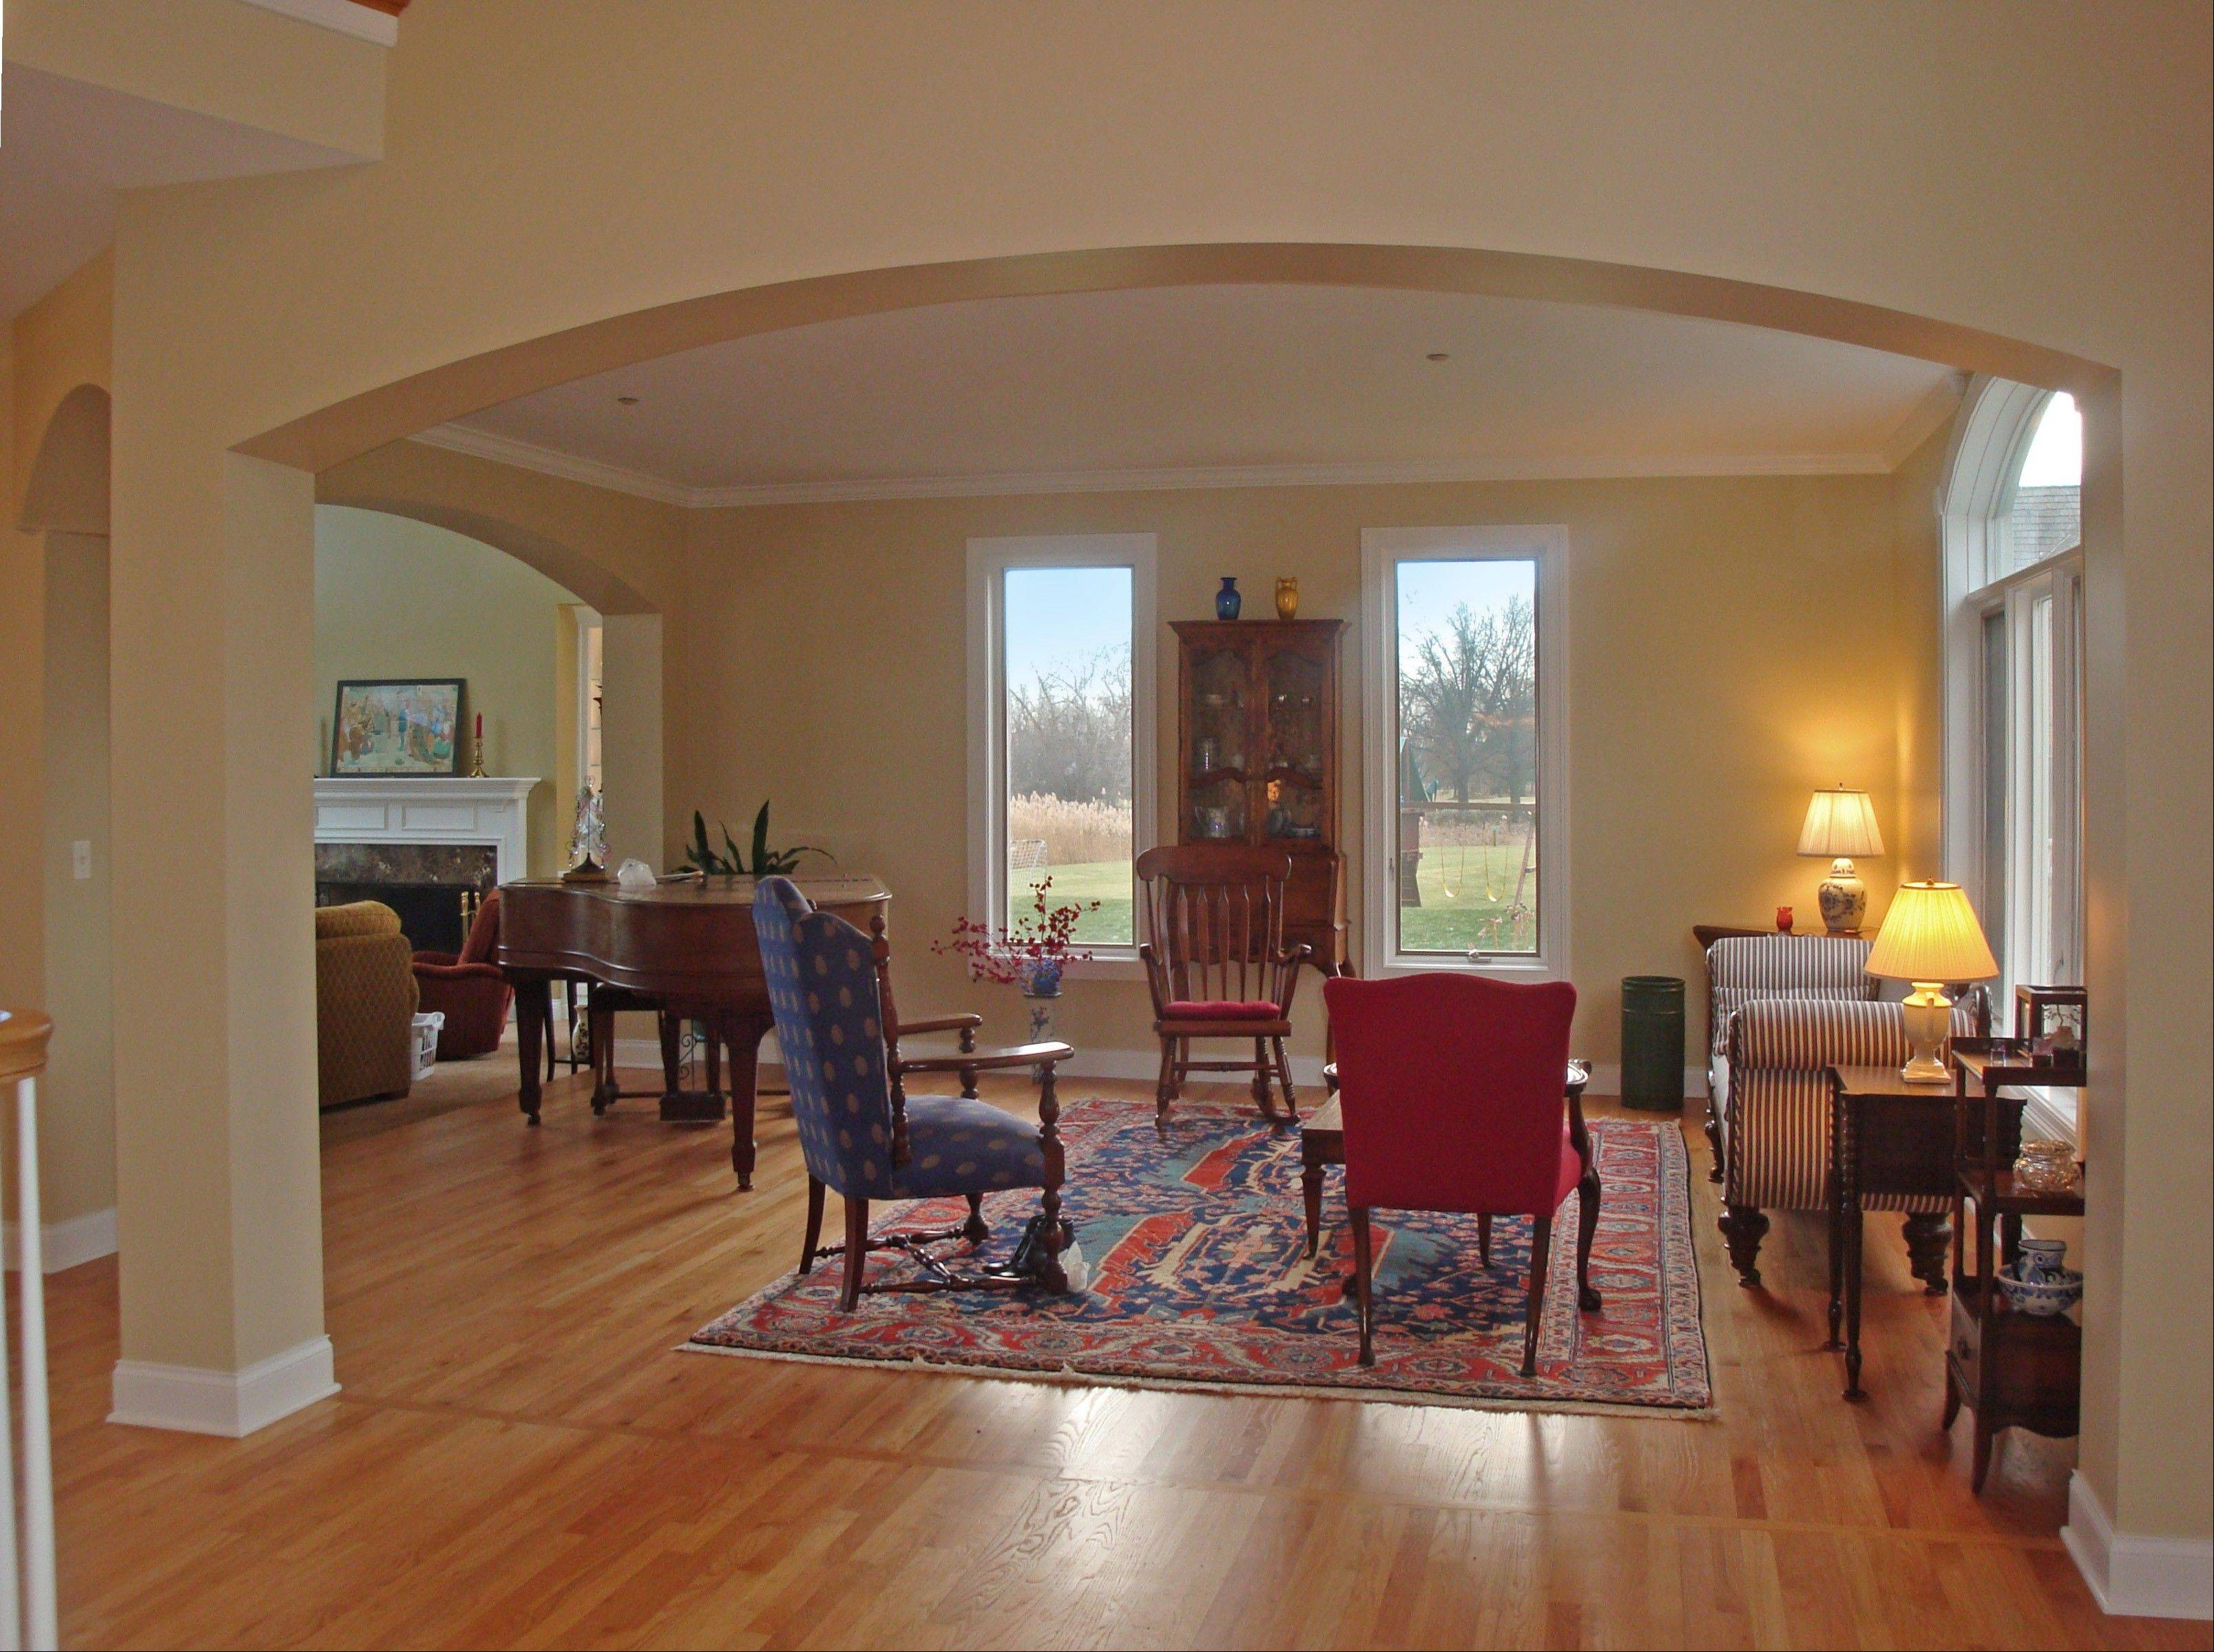 The main level features a living room, dining room, kitchen and foyer, all with hardwood floors.